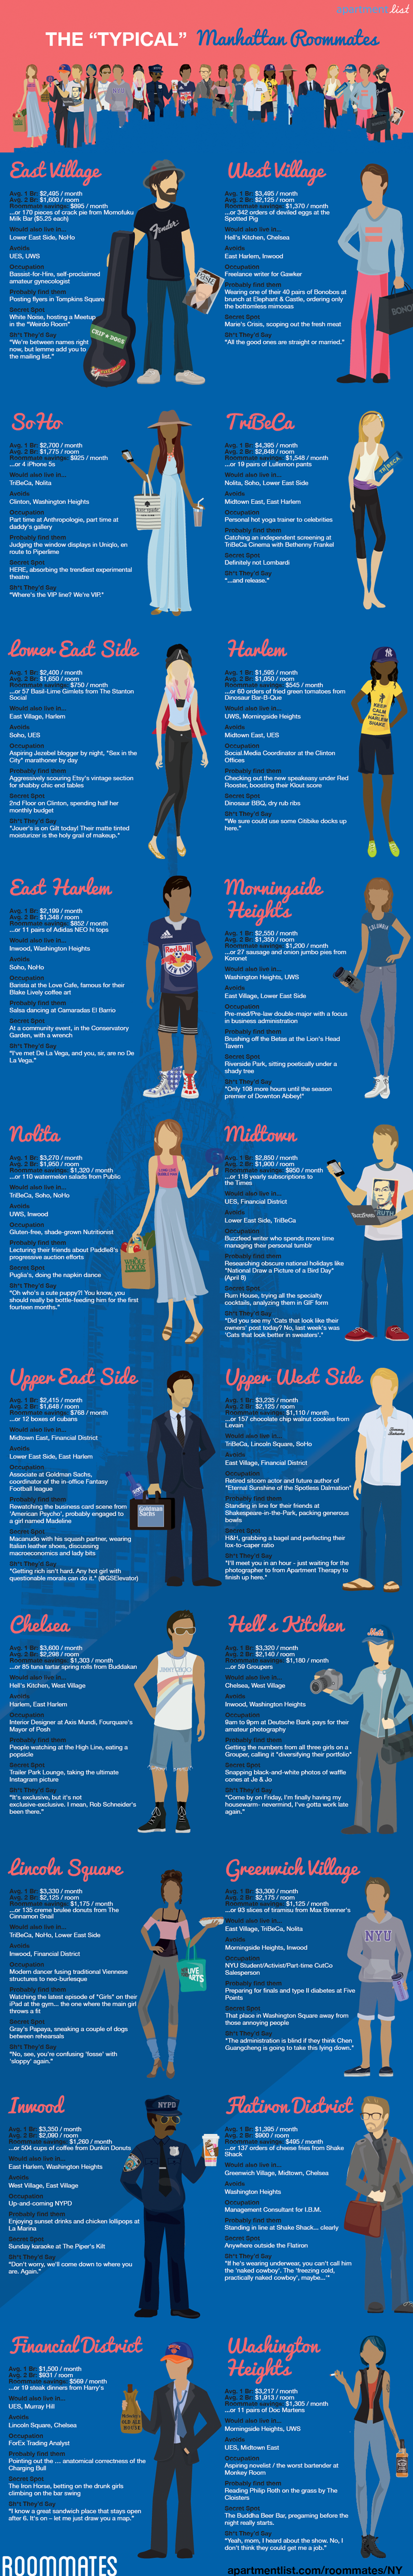 Hilarious Infographic Of Manhattan Neighborhood Stereotypes Is Spot